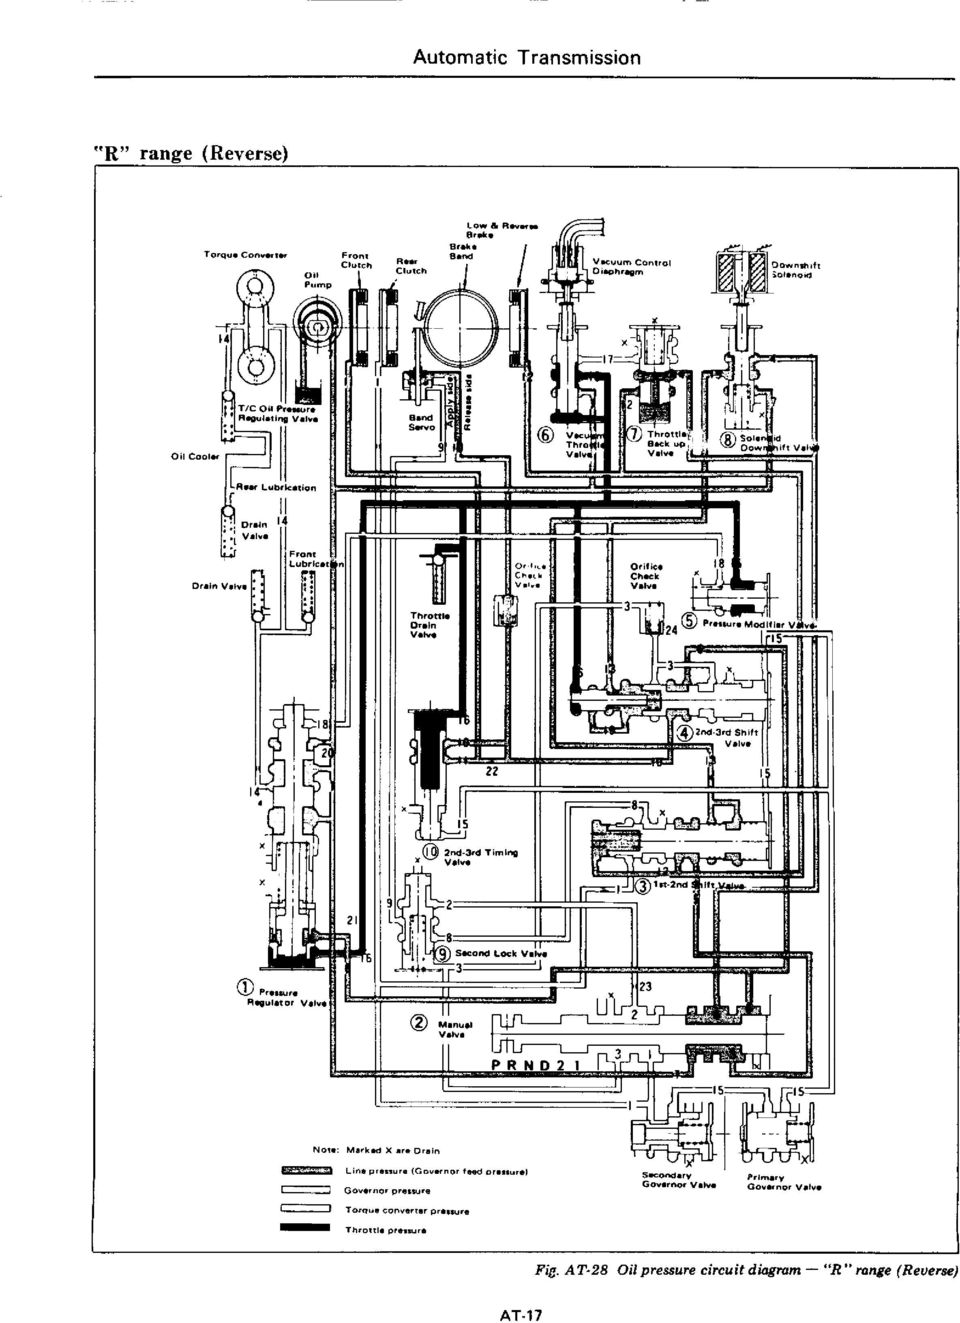 automatic transmission d2 oil file circuit diagram of toyota a340e